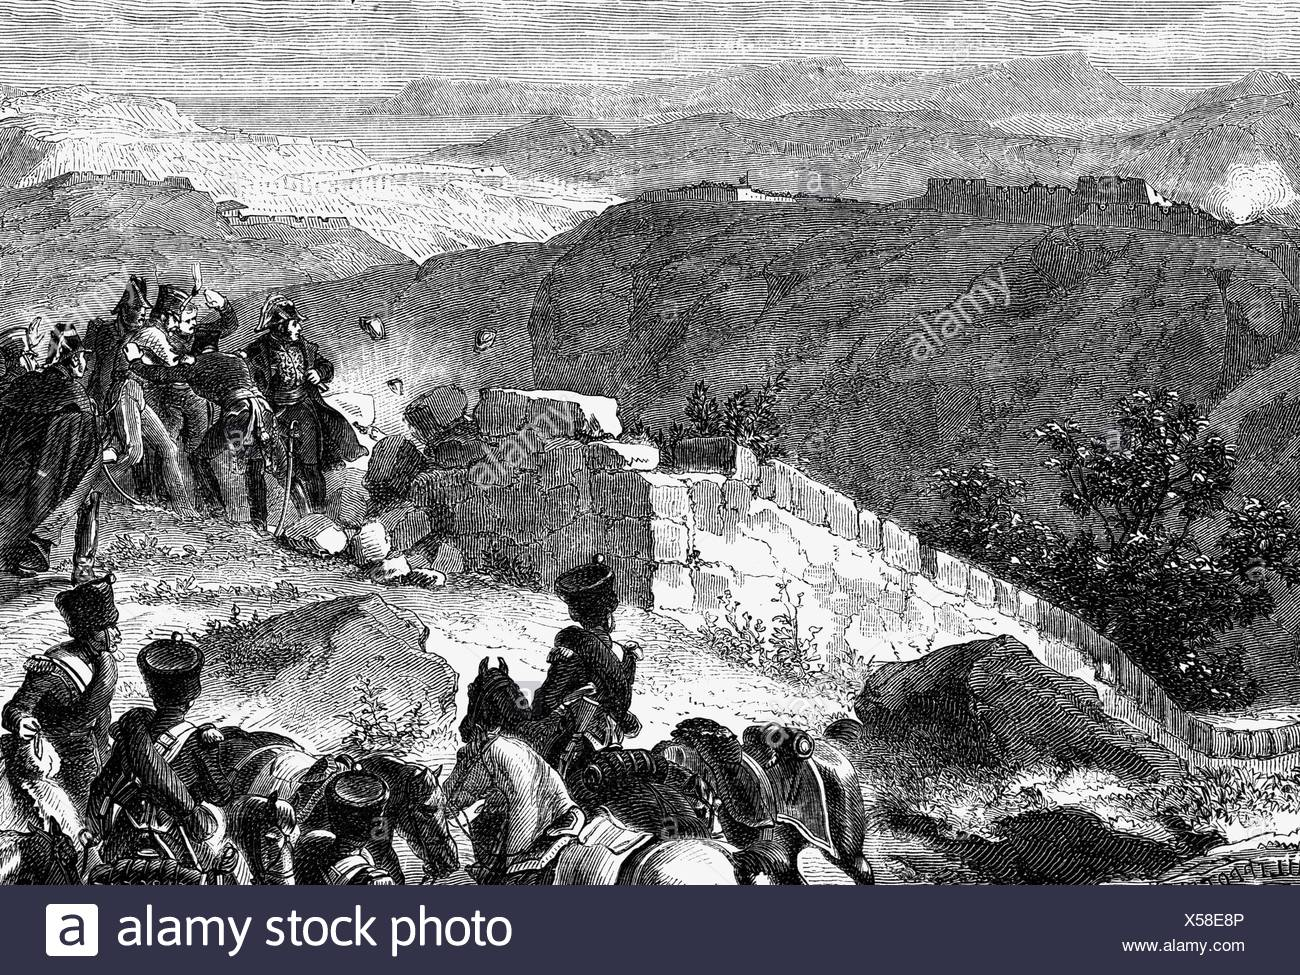 Masséna, André, 6.5.1756 - 14.4.1817, French general, before the Lines of torres Vedras, 1810, wood engraving, 19th century, , Additional-Rights-Clearances-NA - Stock Image